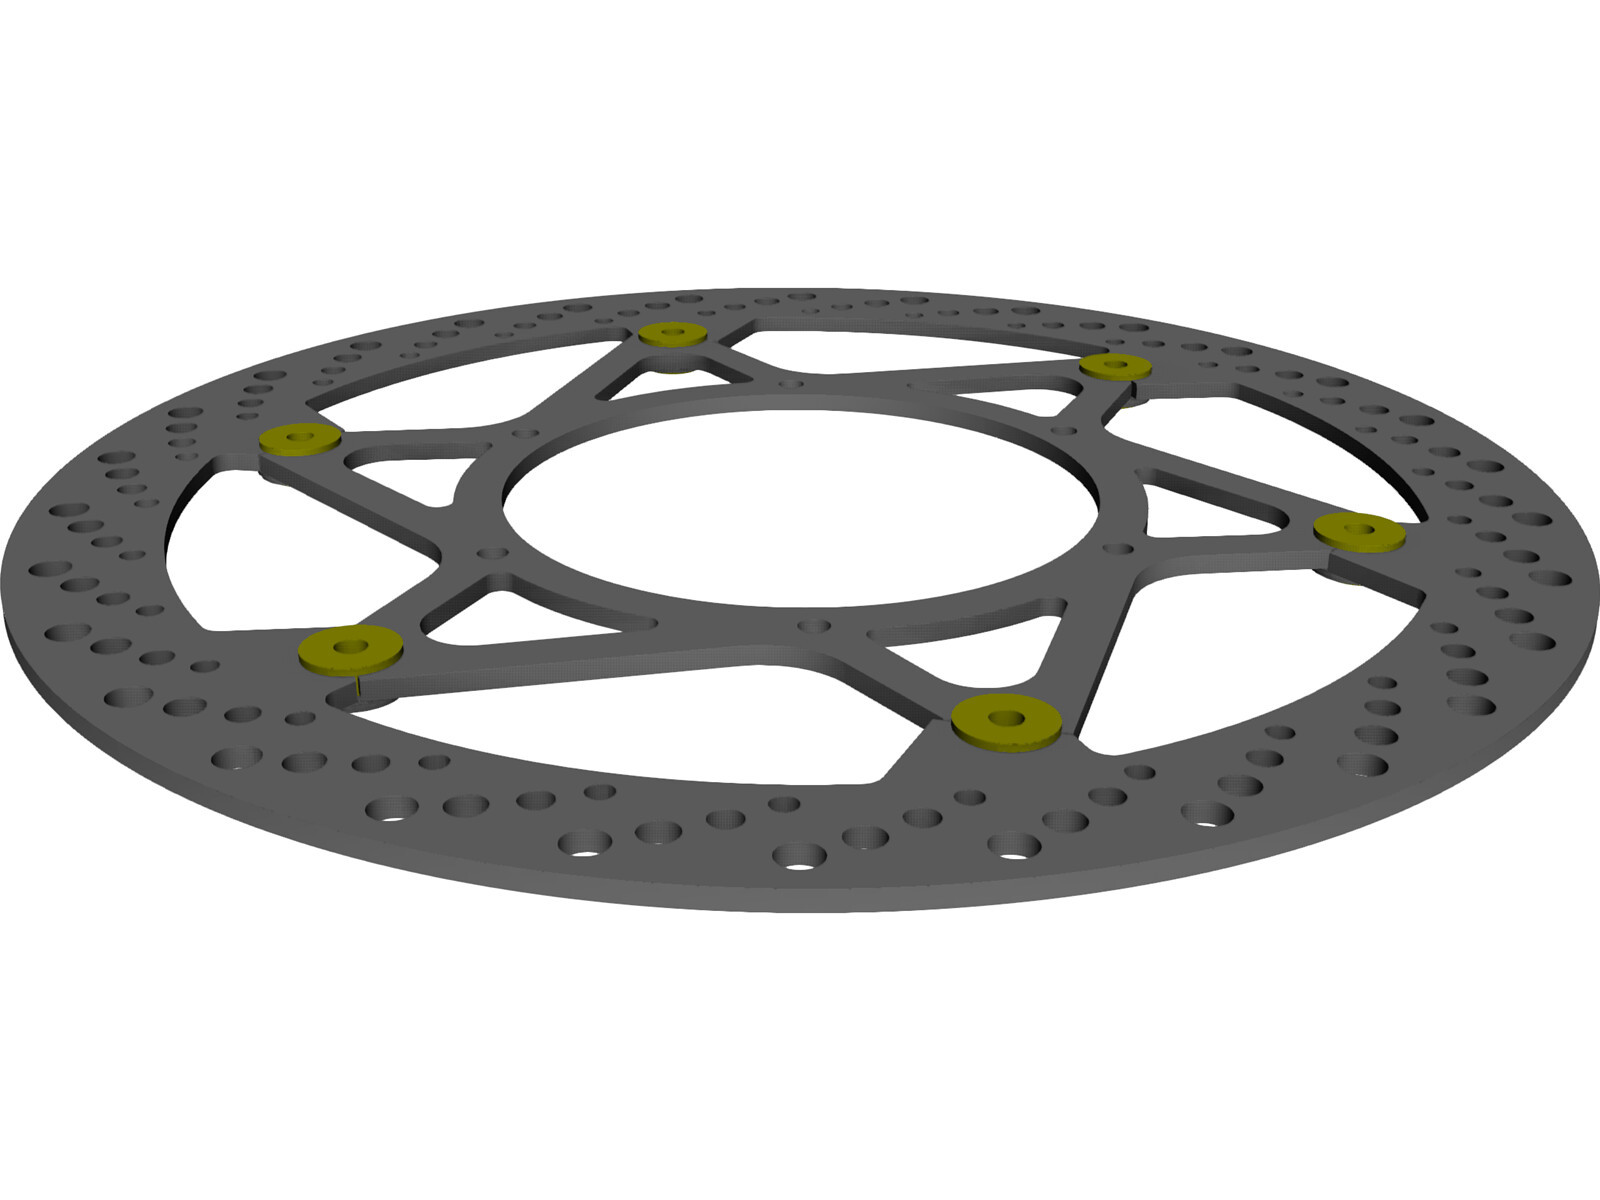 Magura Disc 320mm Complete Right Side 3D CAD ModelFree